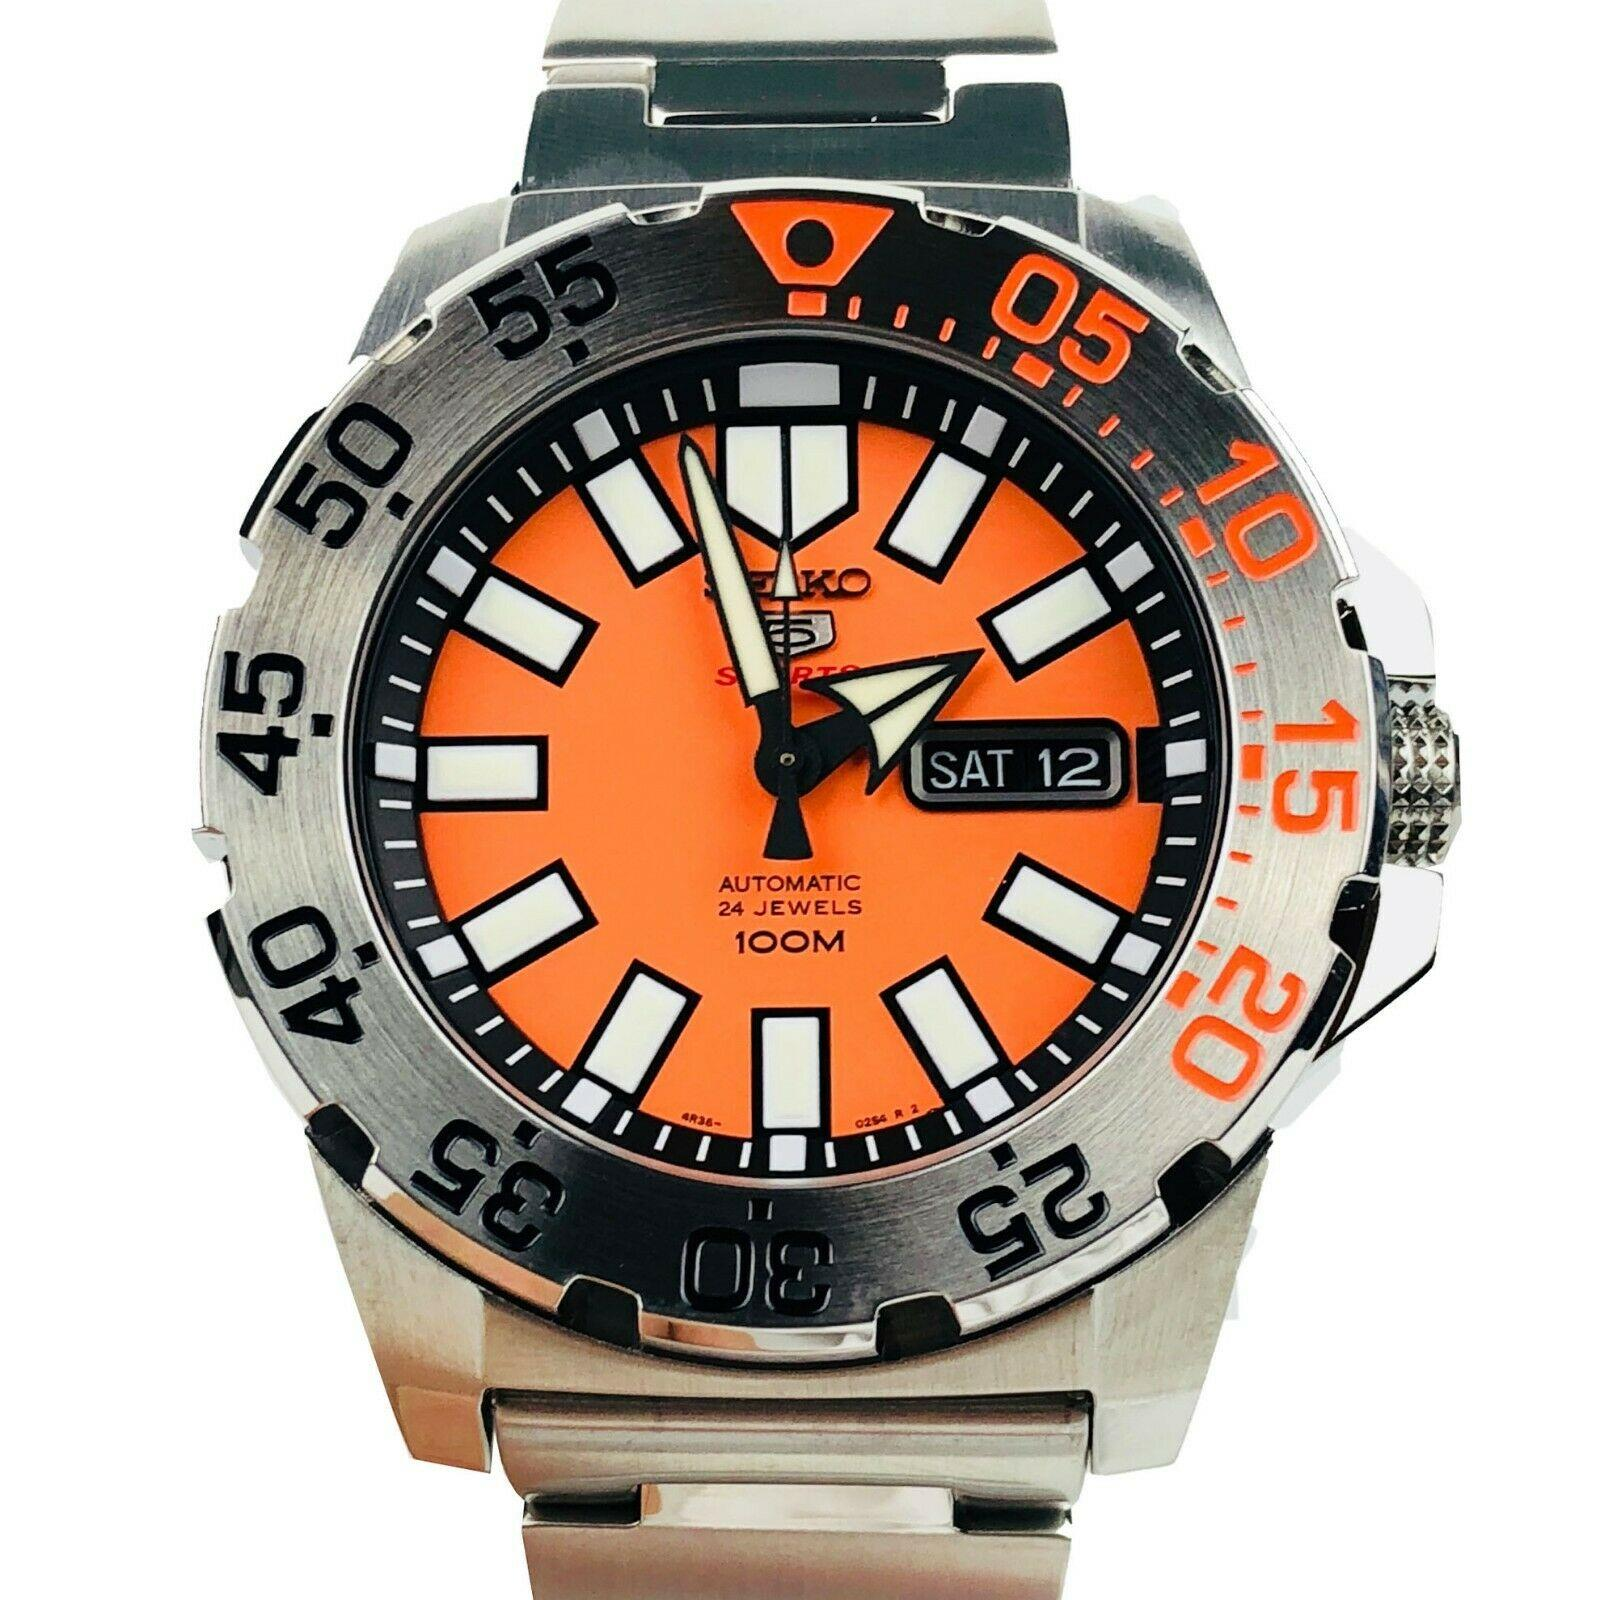 Seiko 5 Sports Diver Baby Monster Stainless Steel Case Stainless Steel Strap Orange Dial Mens Watch SRP483K1 43mm